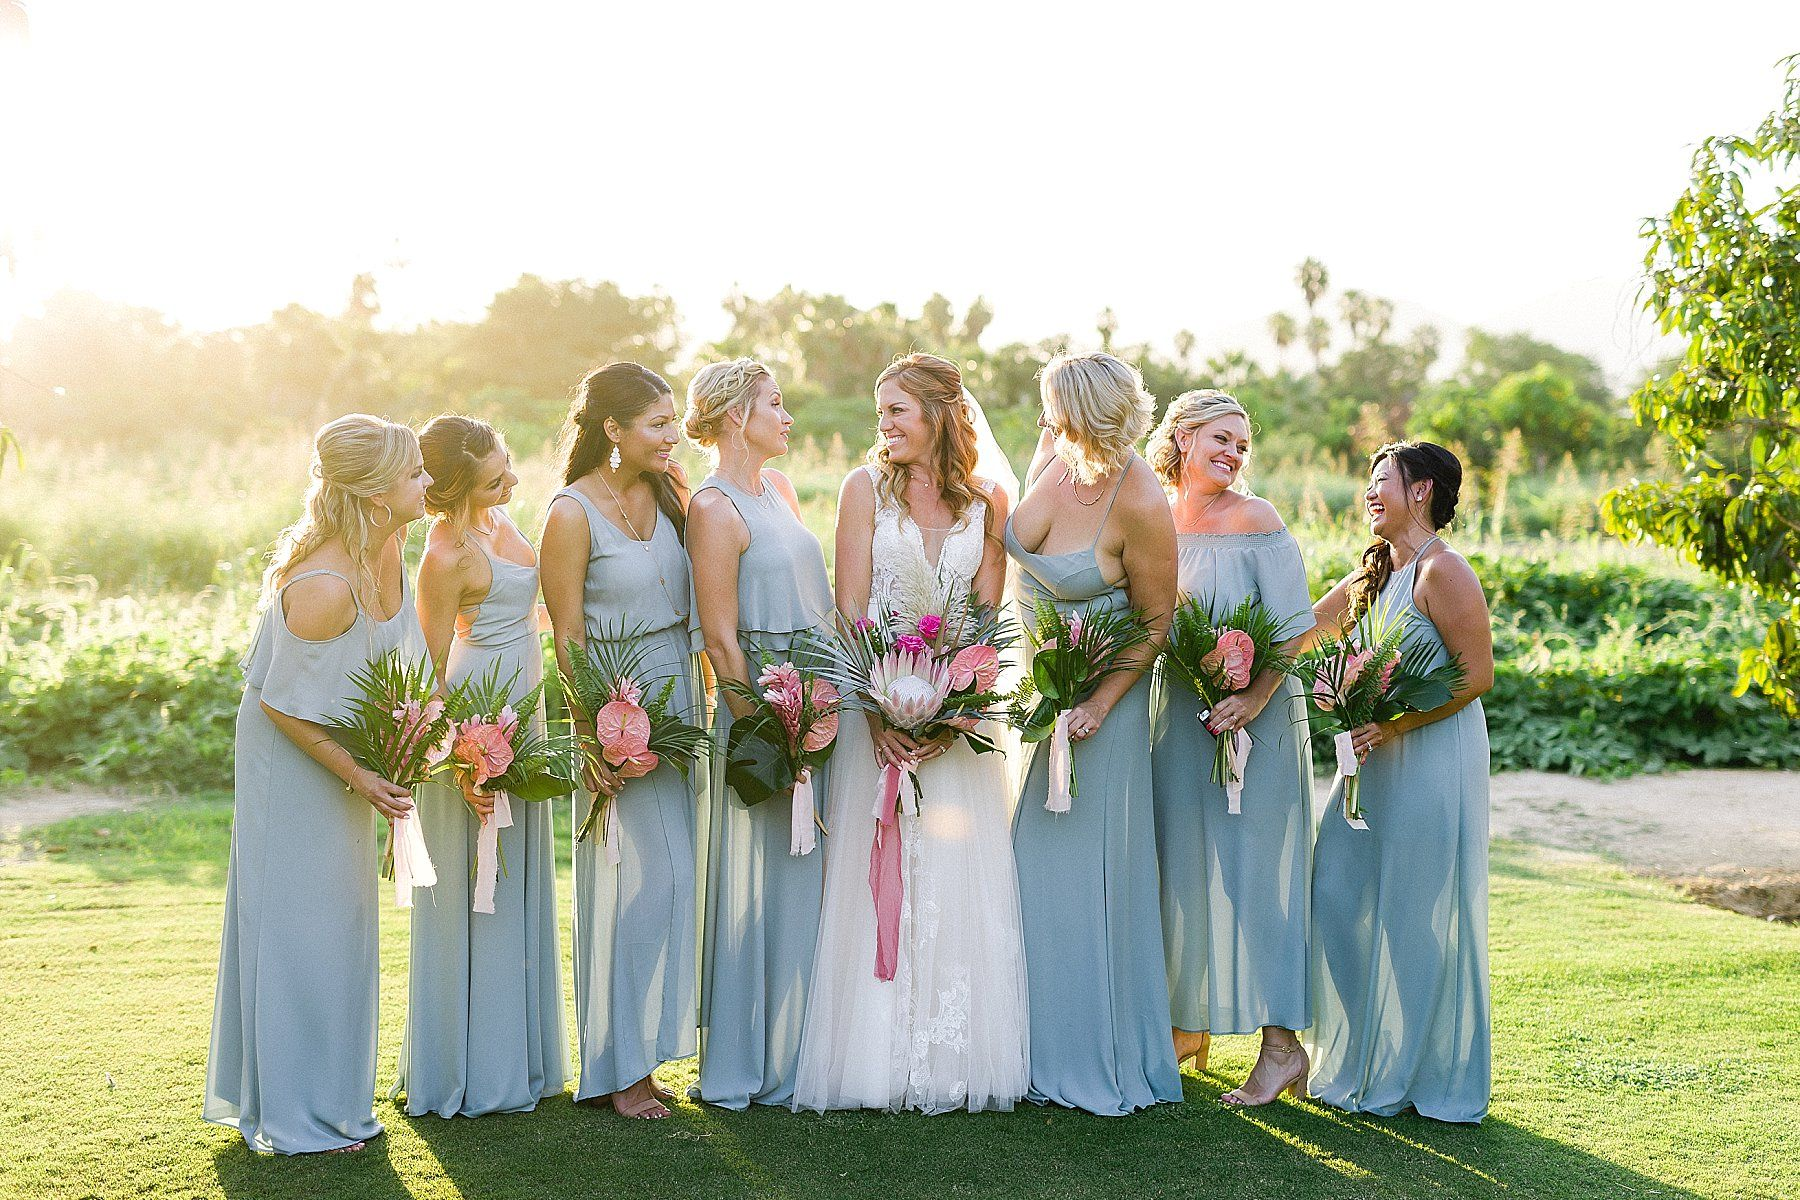 Bride with Bridesmaids posing at wedding venue Flora Farms in Los Cabos, Mexico. Wedding Planning by Cabo Wedding Services and Wedding Photography by Sara Richardson